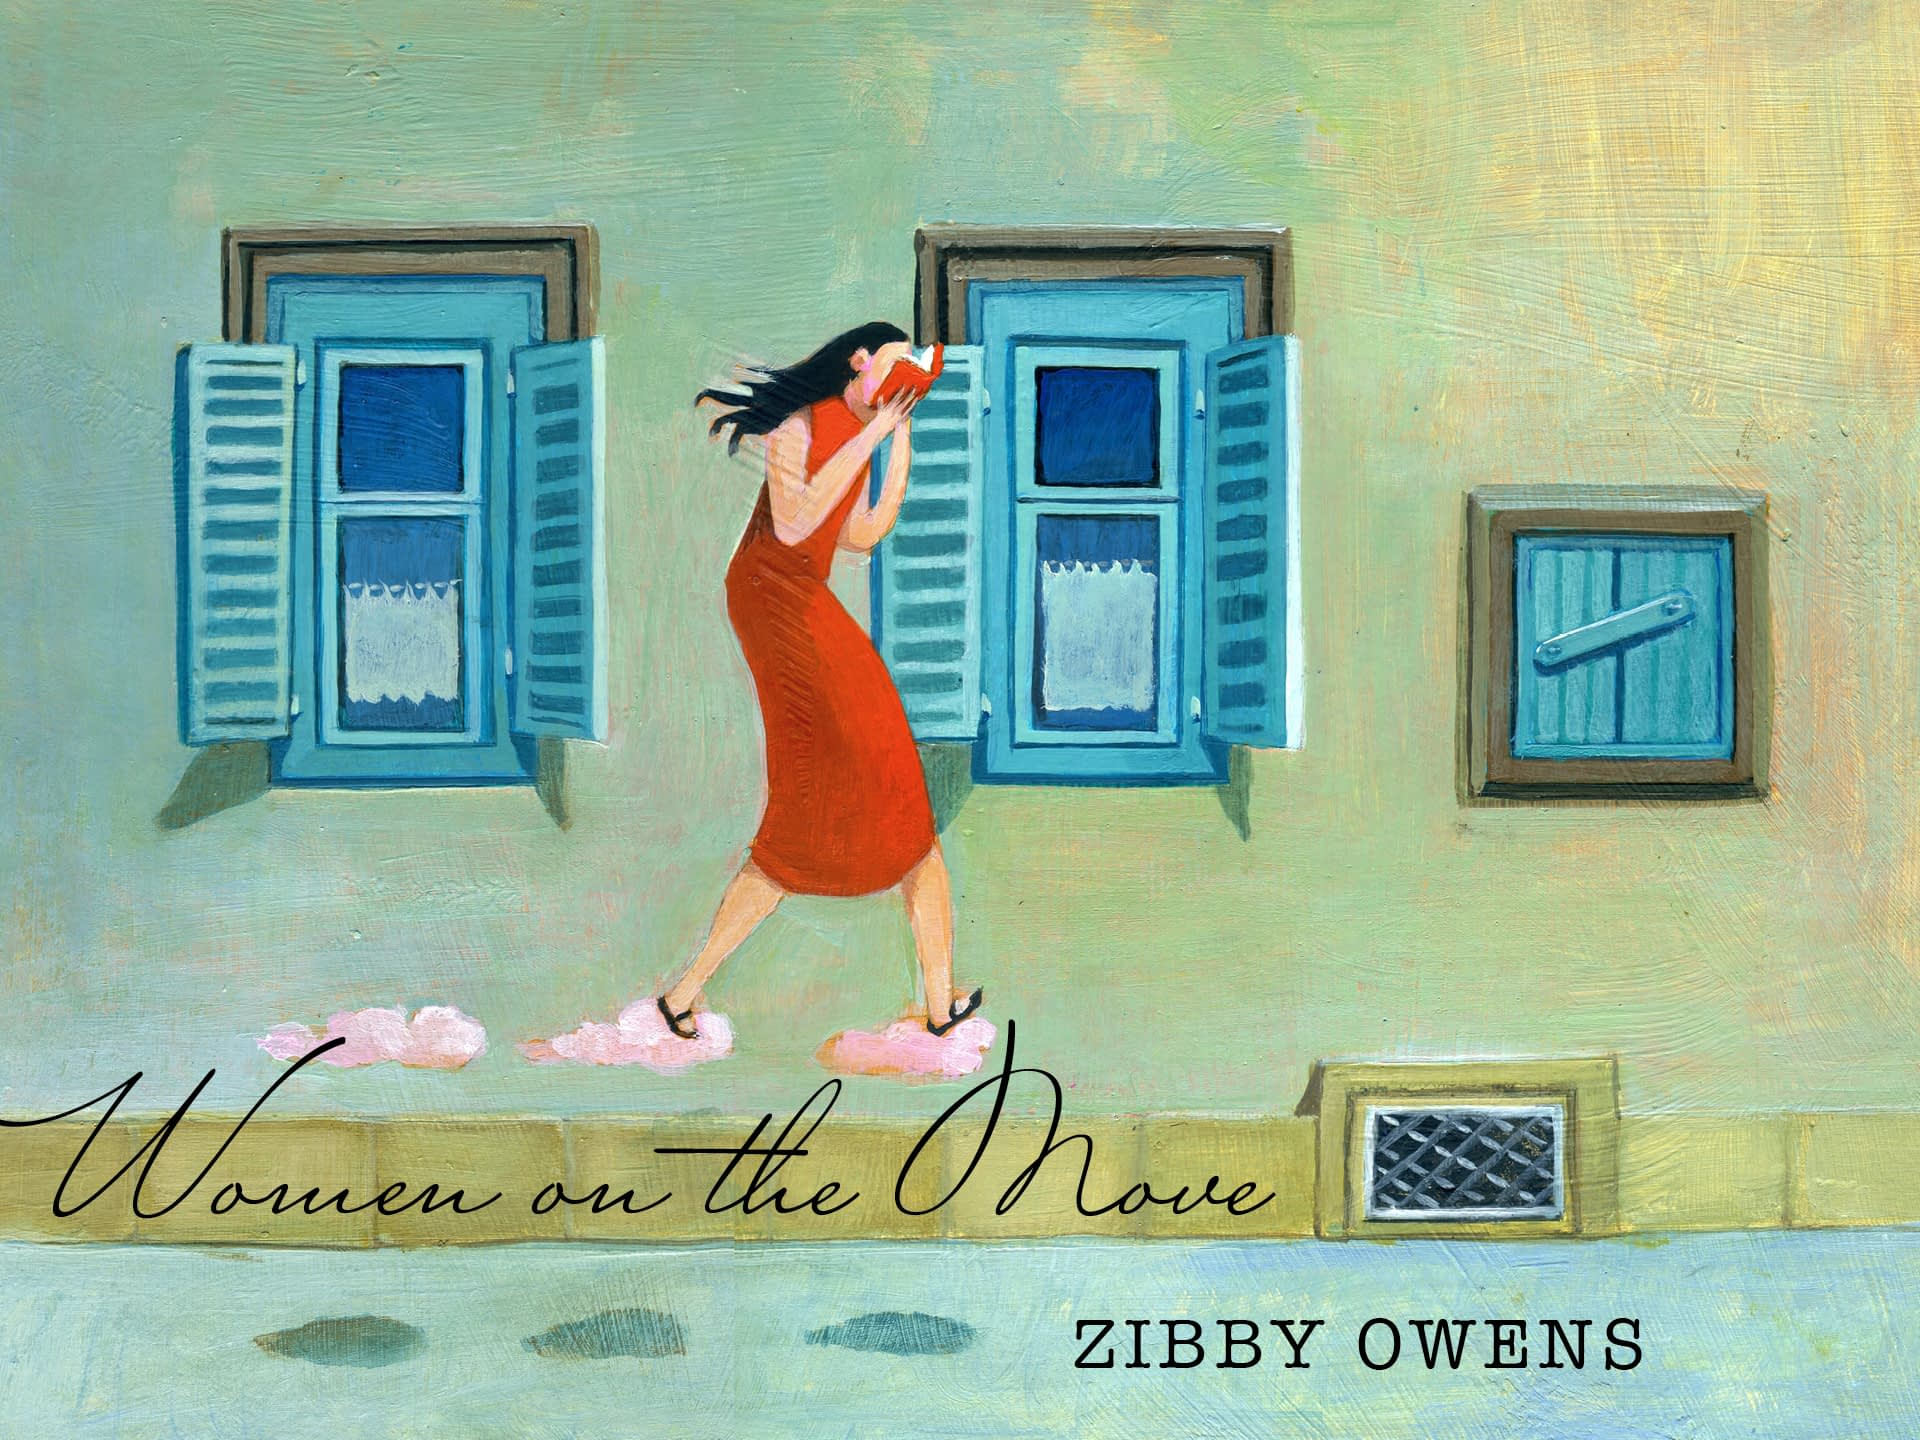 Zibby Owens: Women on the Move - Image - Illustration